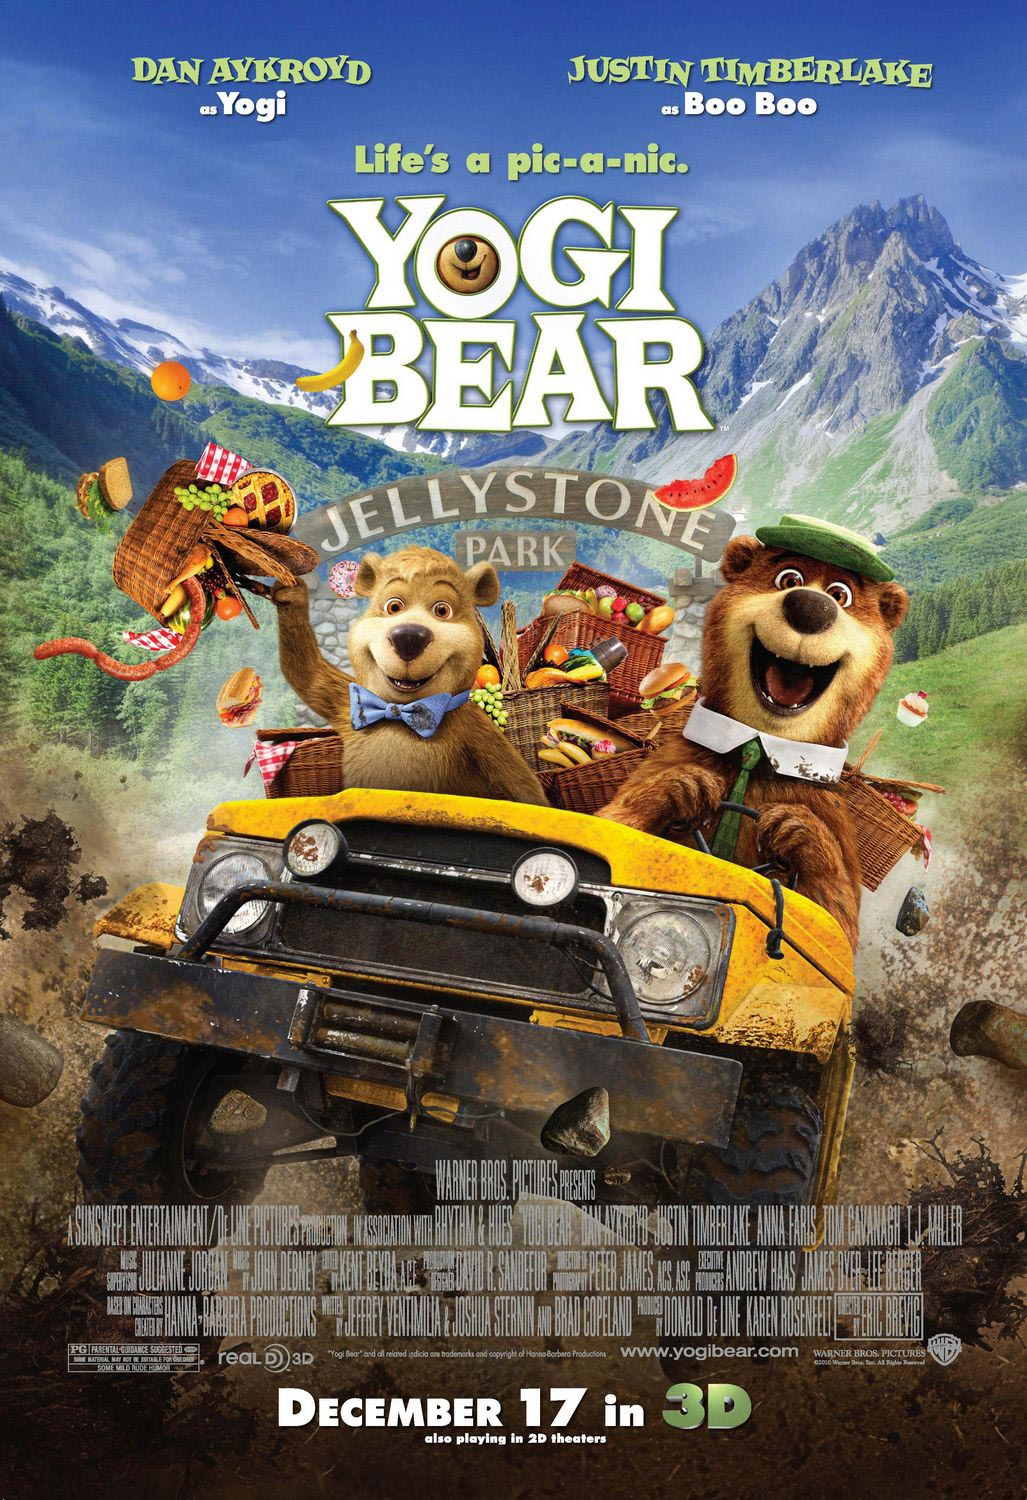 Yogi Bear Movie Poster Controversy New Yogi Bear Posters ...